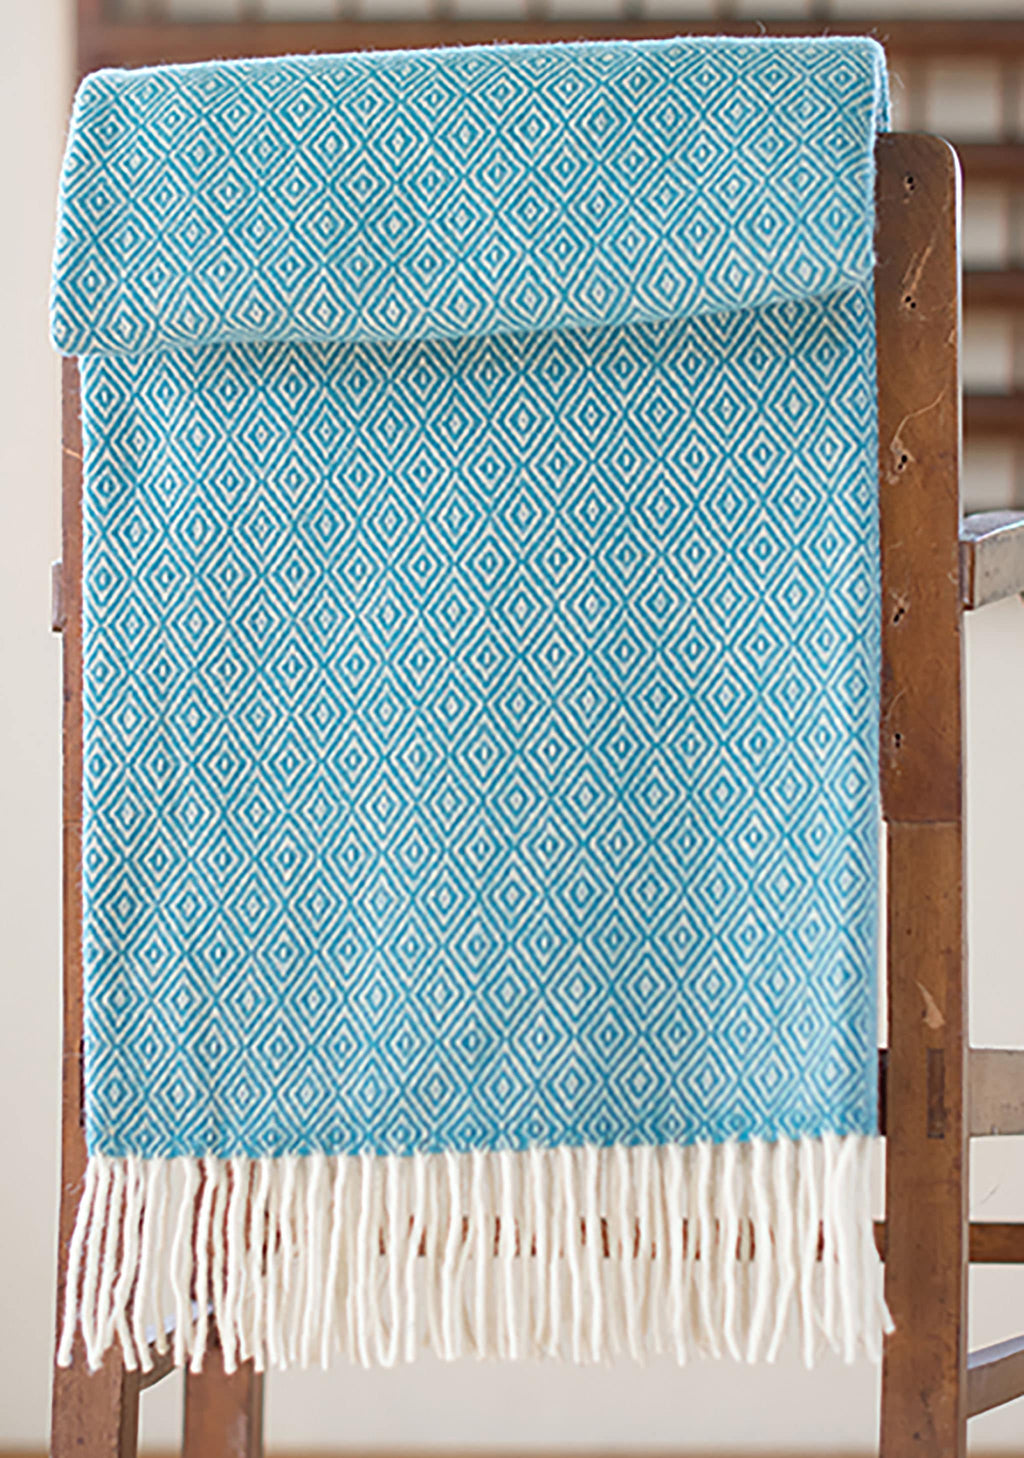 Teal Merino throw with double lozenge pattern folded over a side table